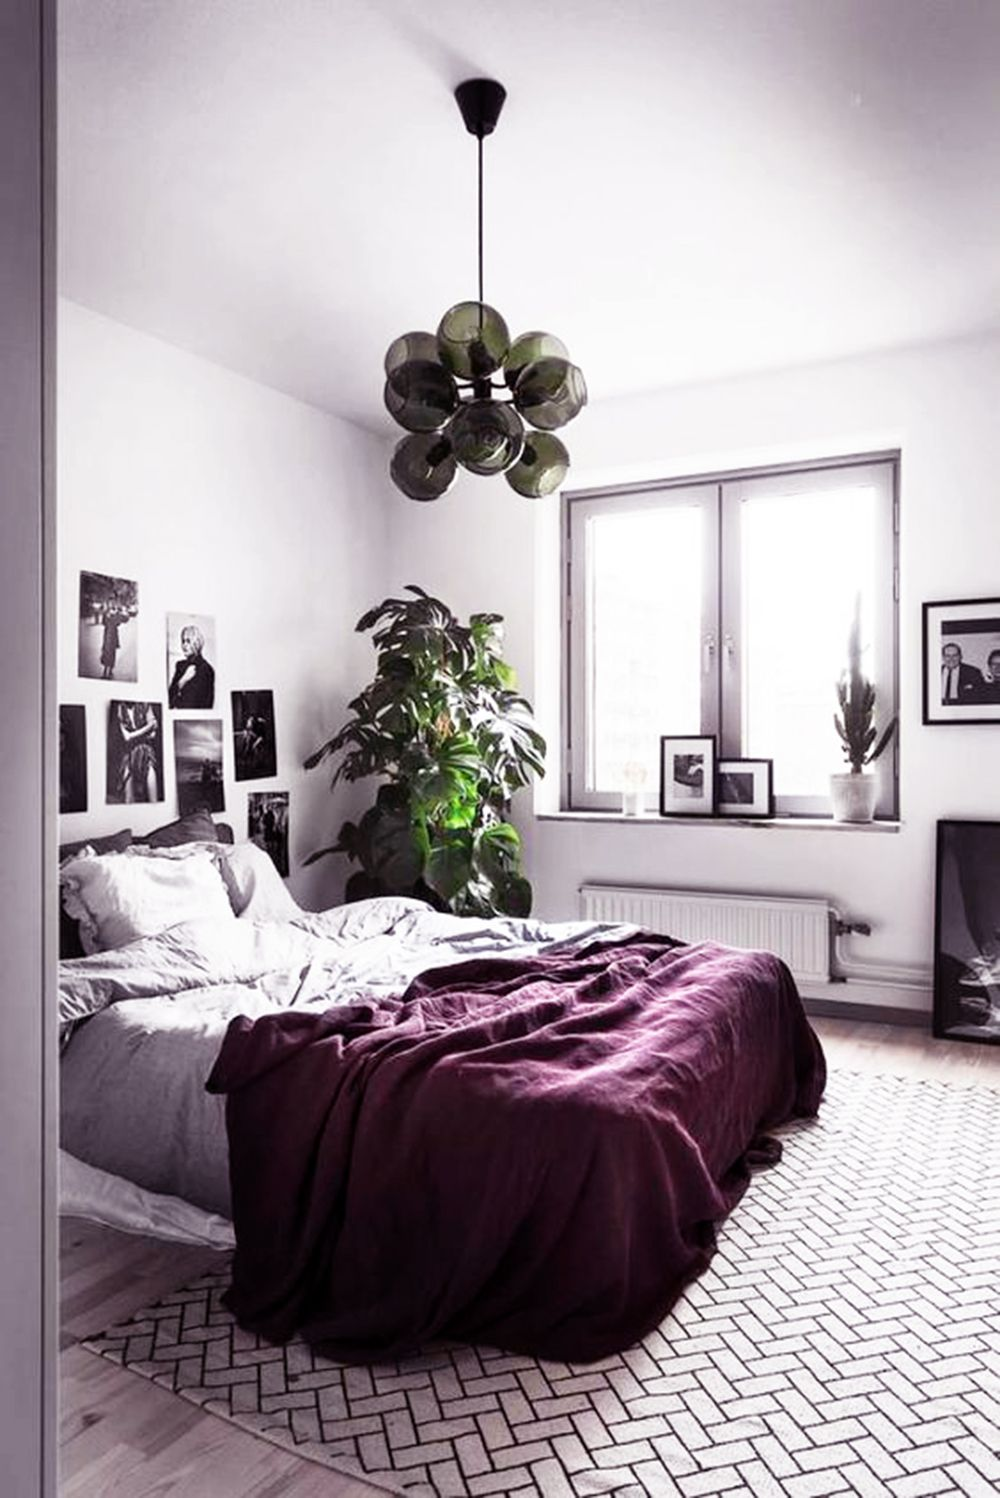 Color inspiration: Ultra Violet | Apartment decor | Pinterest ... on master bedroom with dark furniture, dark cherry wood furniture, espresso color furniture, bedroom design ideas, refurbished wood furniture, bedroom dressers with mirrors, dark wood floor living room furniture, solid cherry wood furniture, bedroom dresser top decor, espresso dressers furniture, dark chocolate furniture, brown leather living room furniture,